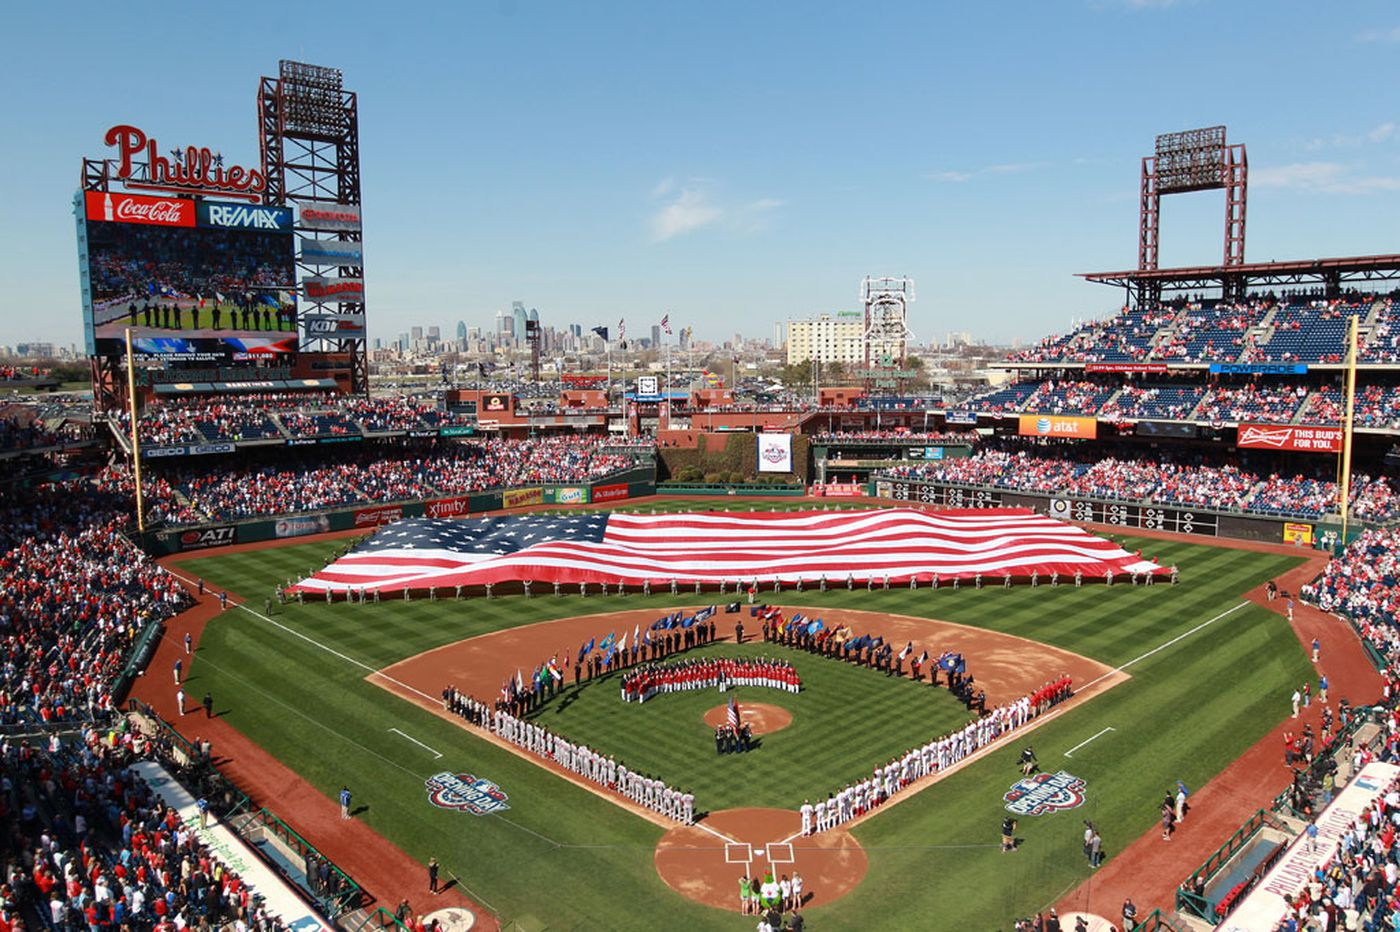 Phillies season is about to start: Share your opening-day memories